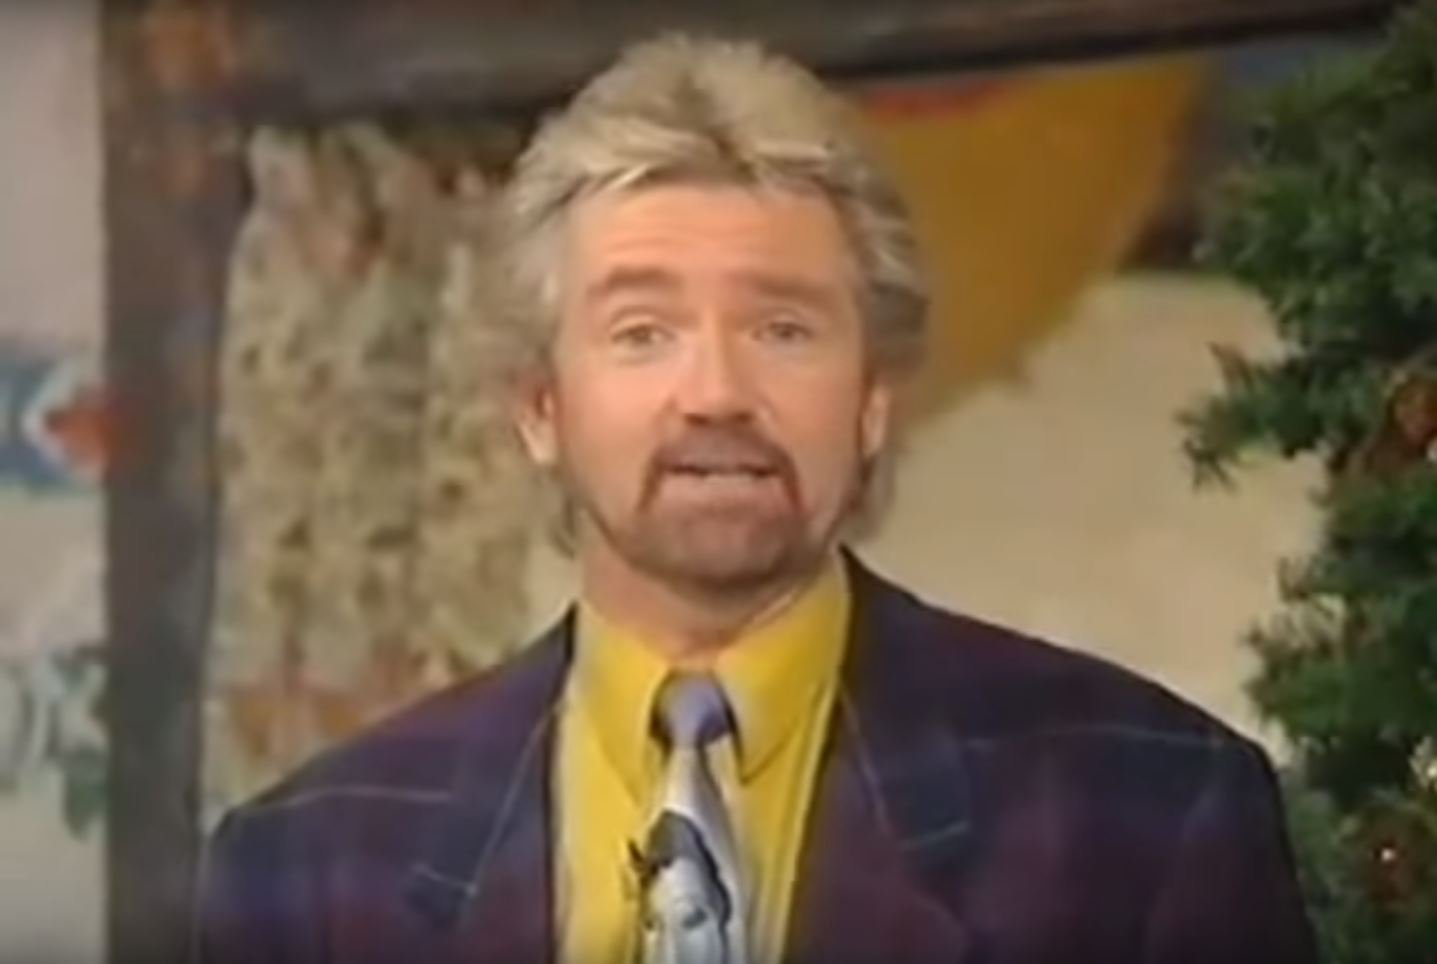 Picture: BBC Piers Morgan is slimed by Noel Edmonds as retro house party footage is unearthed